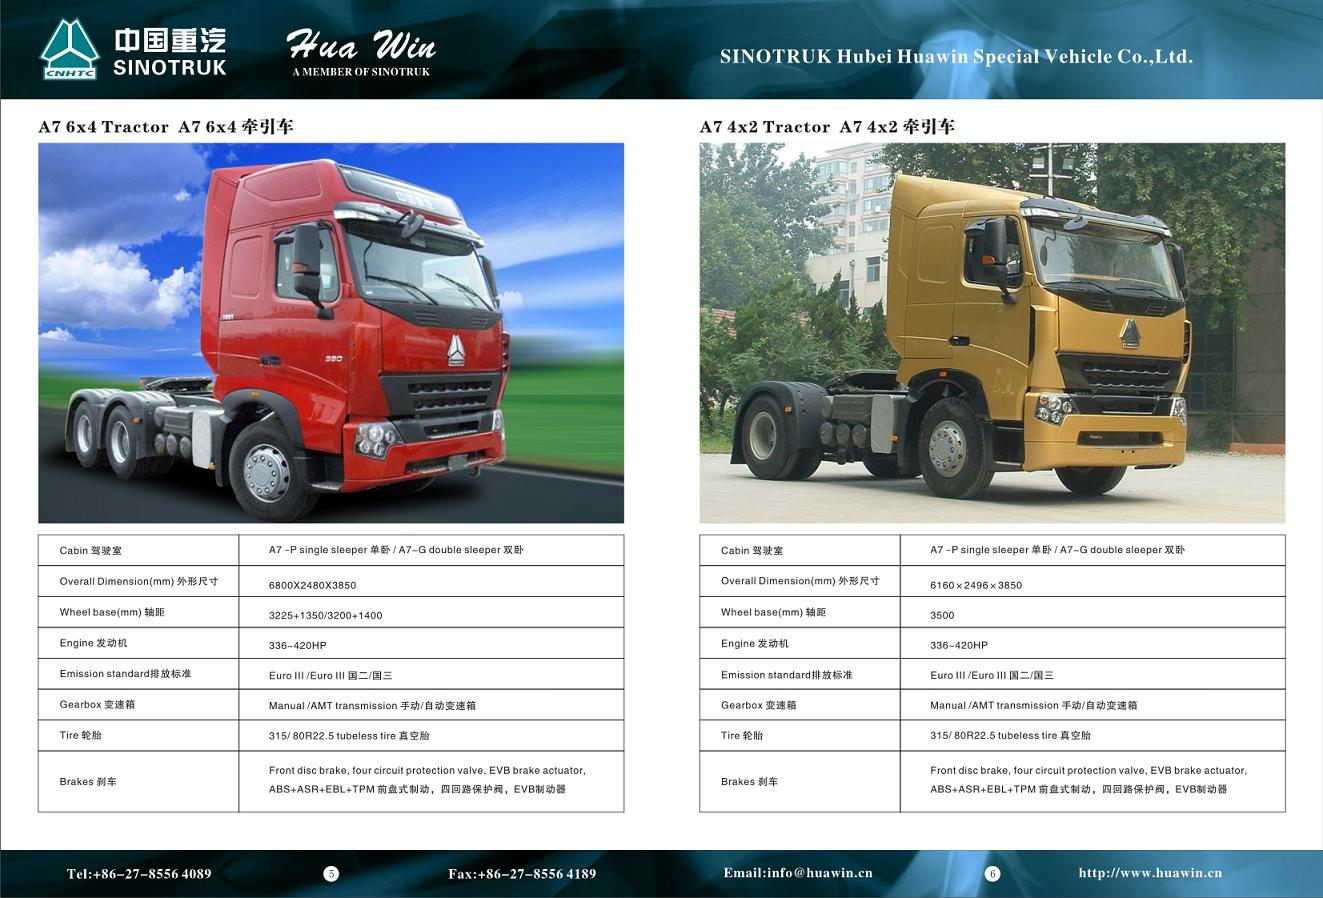 Hubei Tractor Parts : A tractor sinotruk hubei huawin special vehicle co ltd